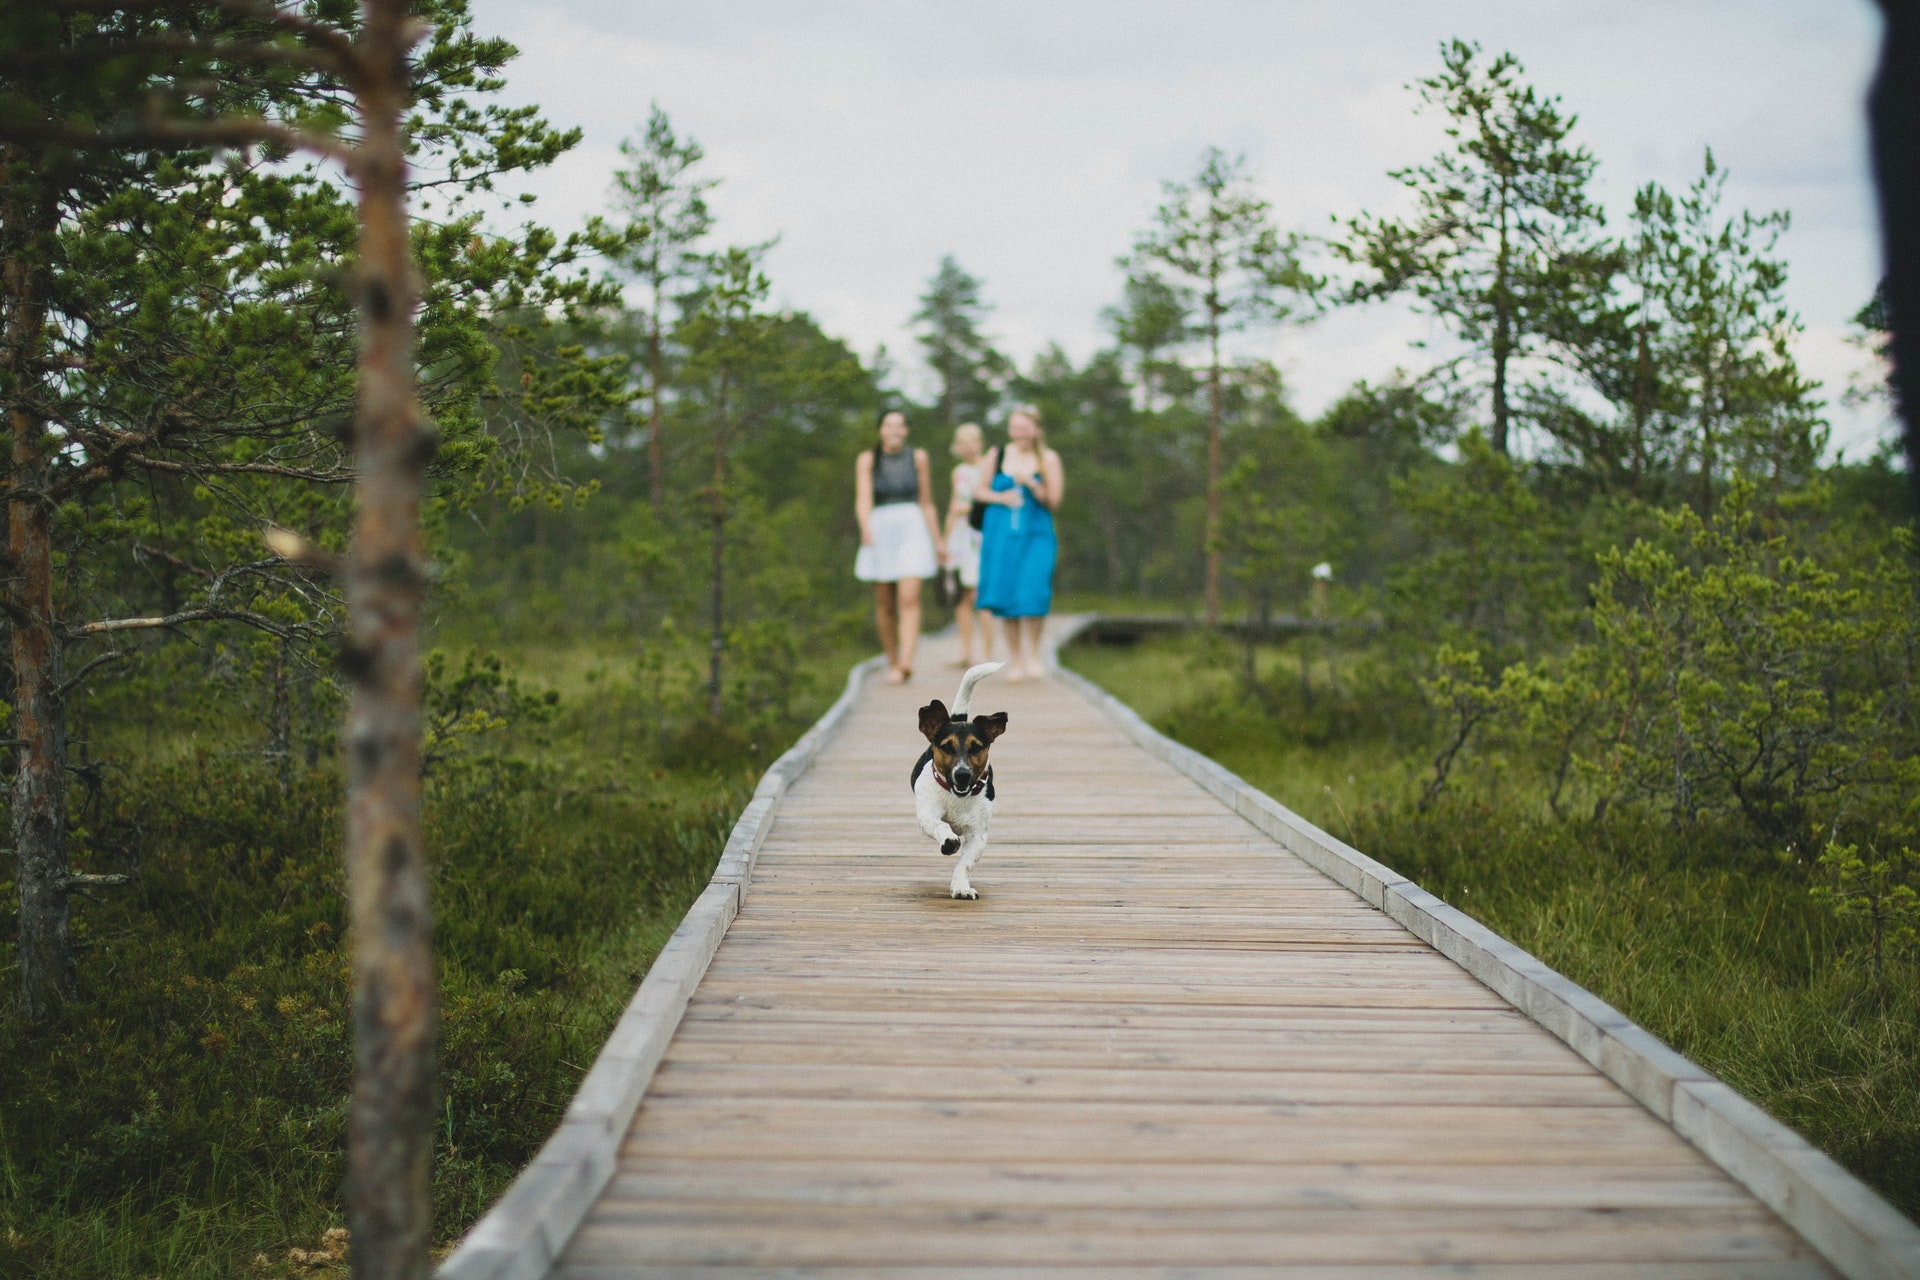 Good Dogs & Co.: 5 Ways to Make Your Walks More Exciting